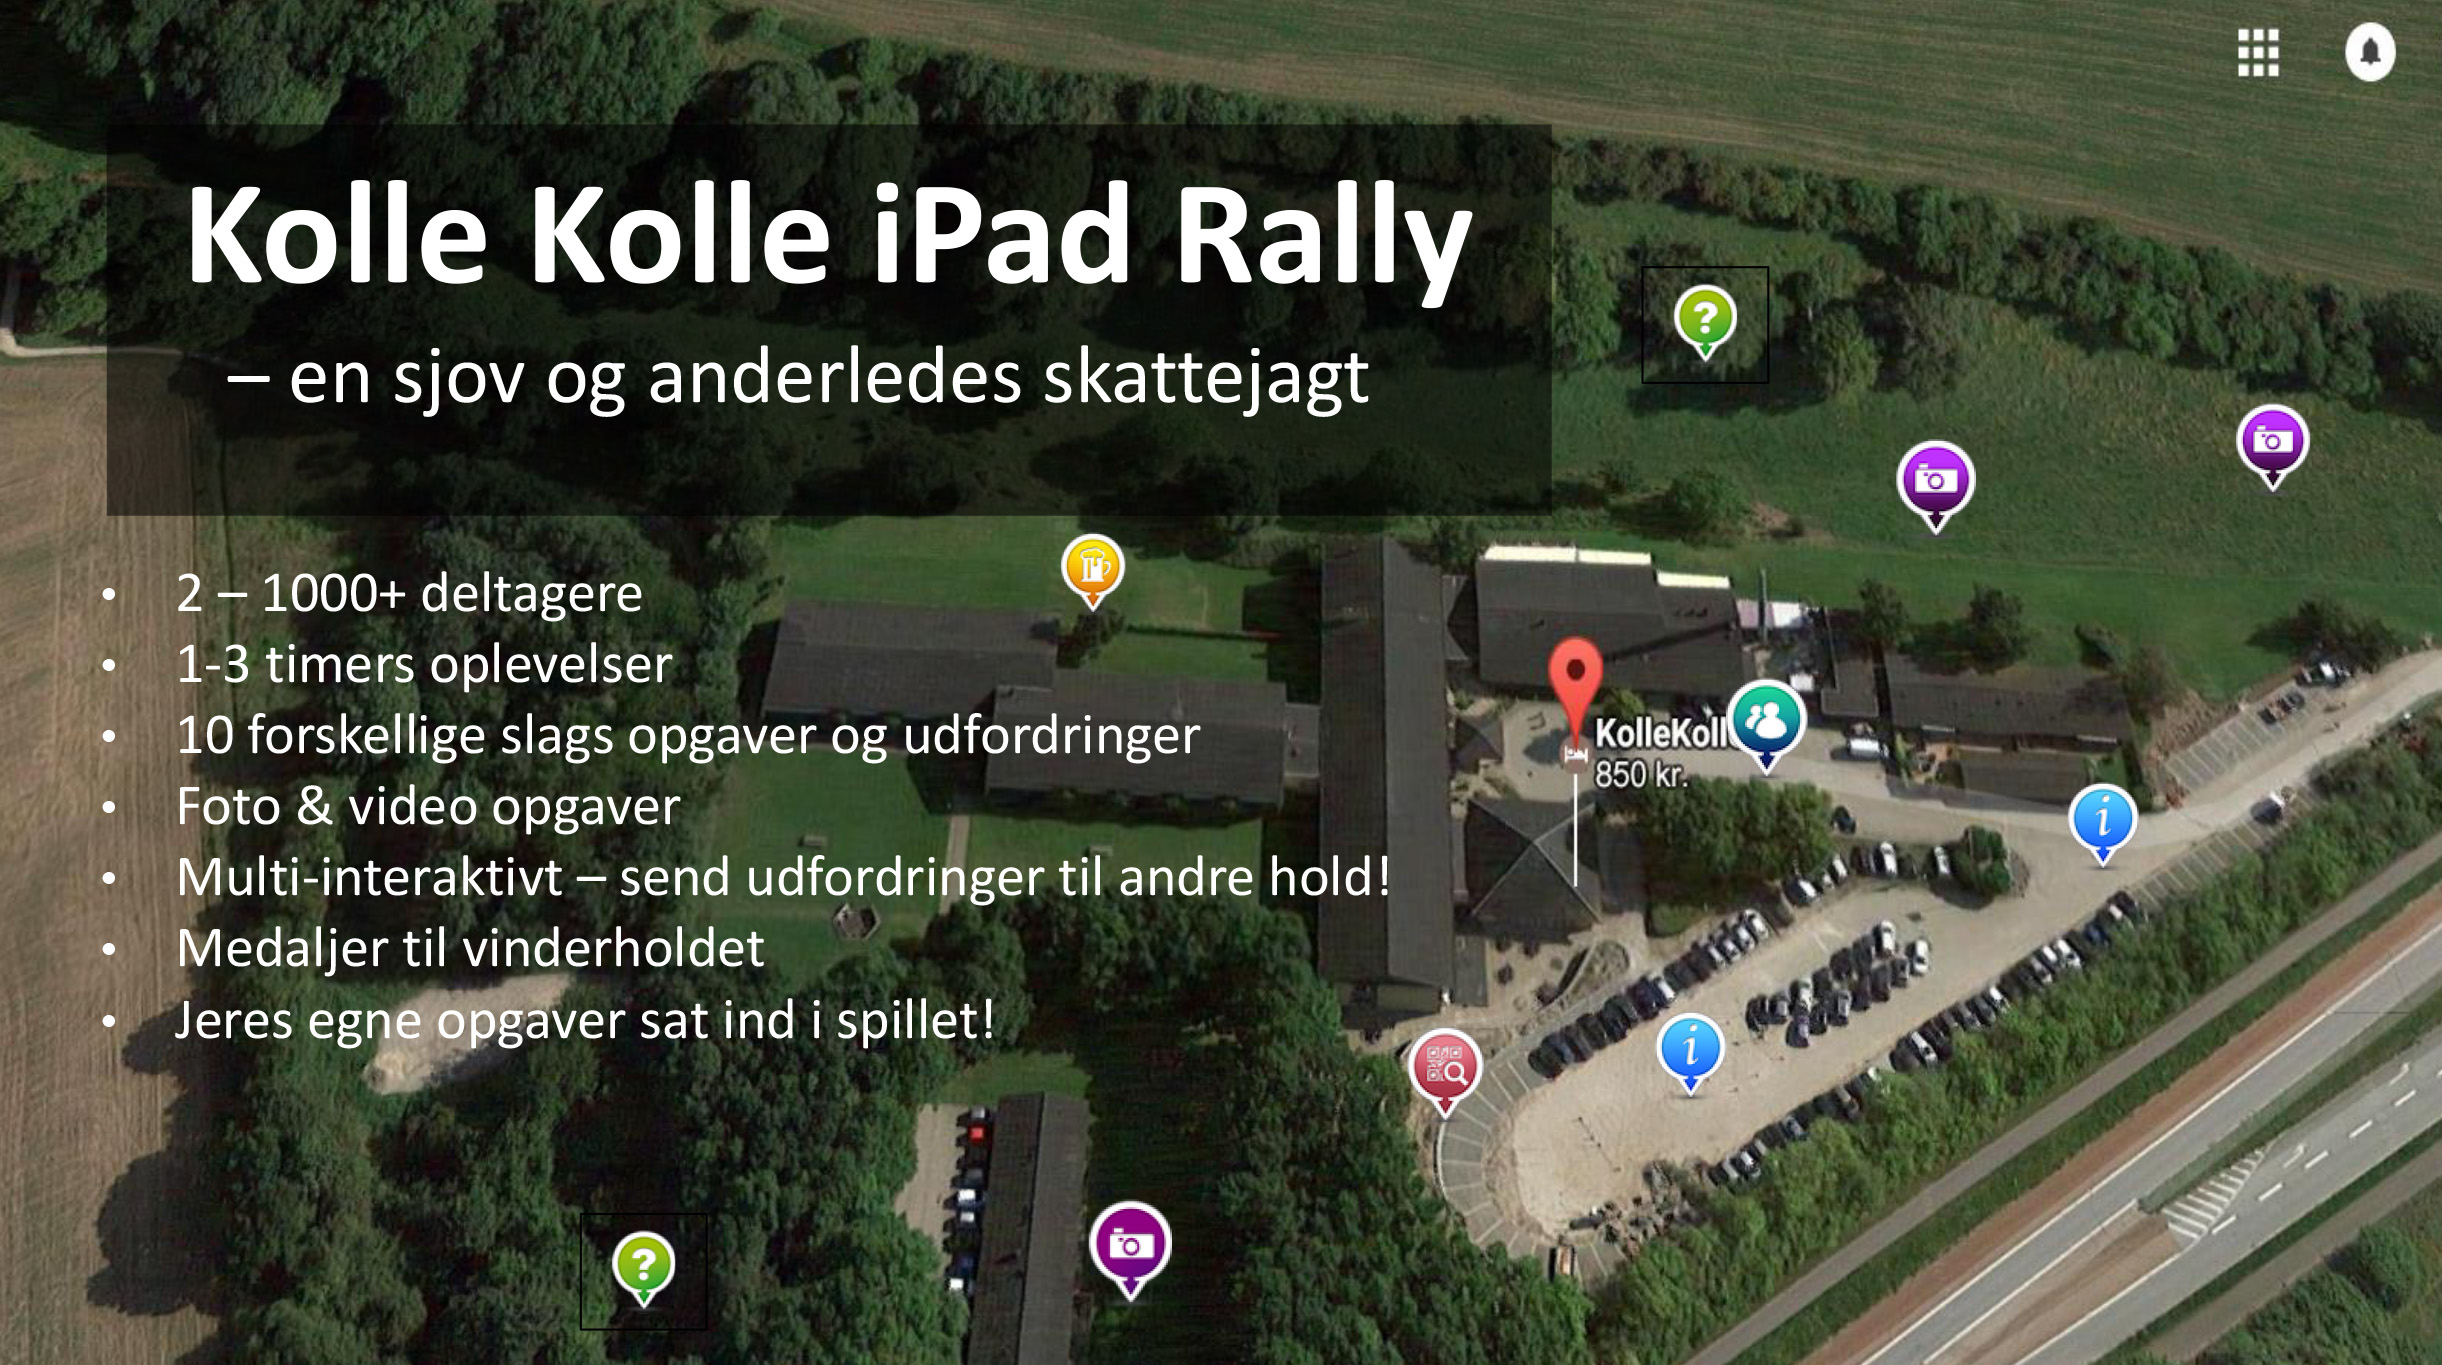 KolleKolle iPad Rally